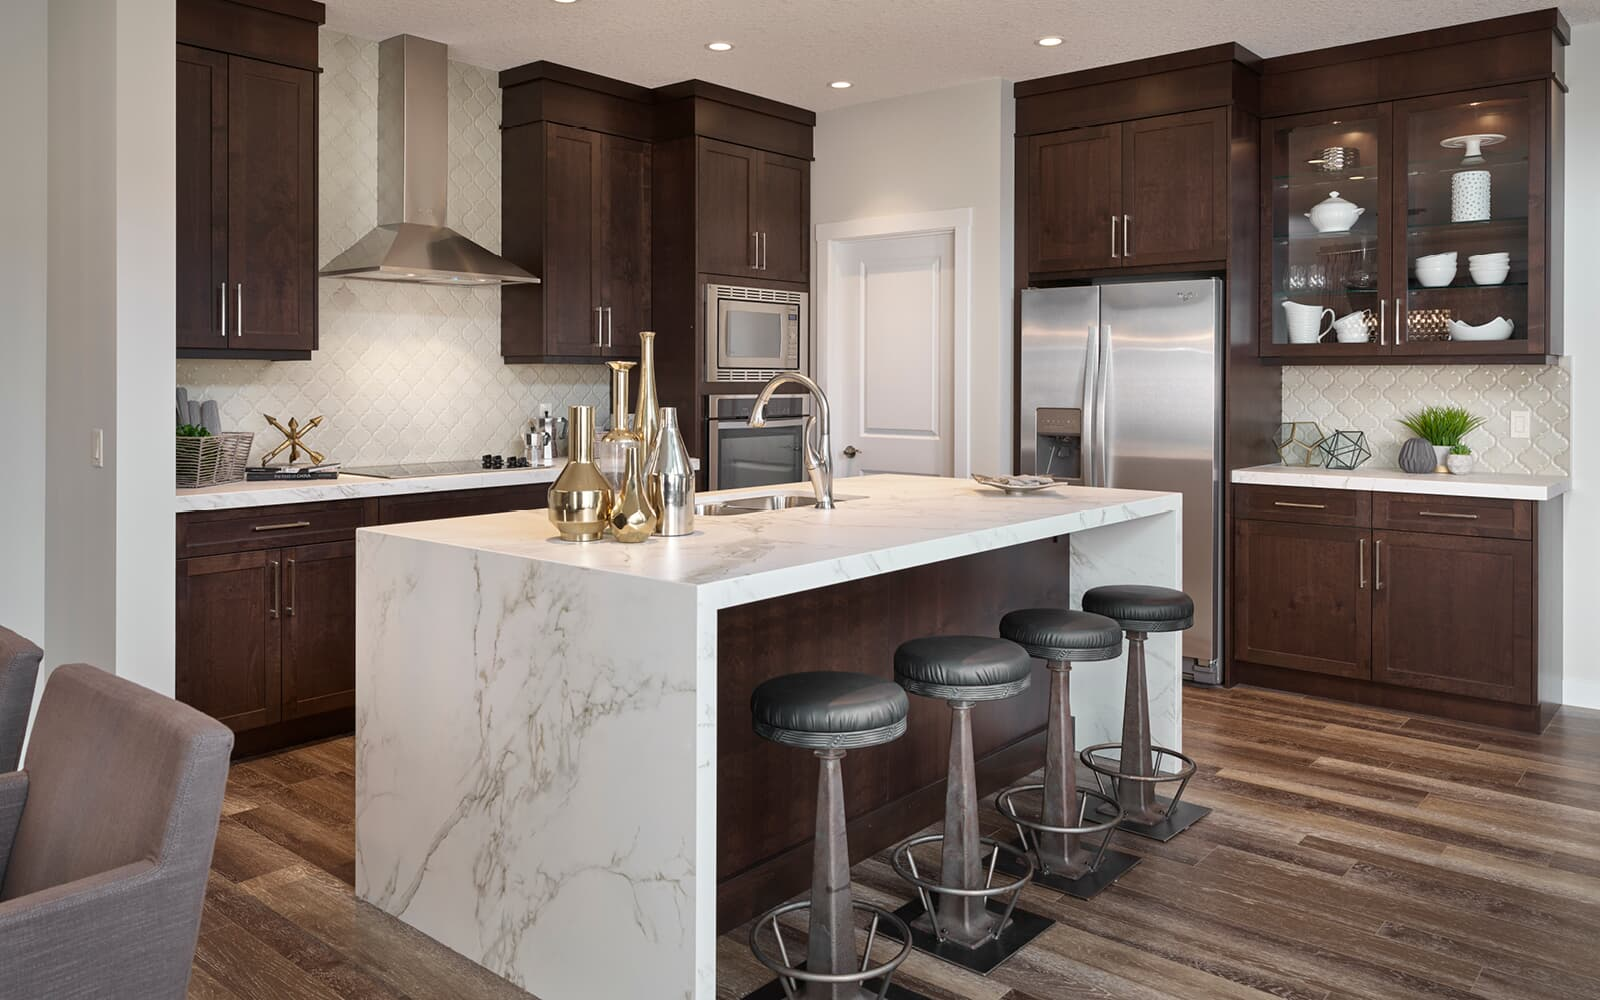 kitchen-savona2-west-grove-calgary-alberta